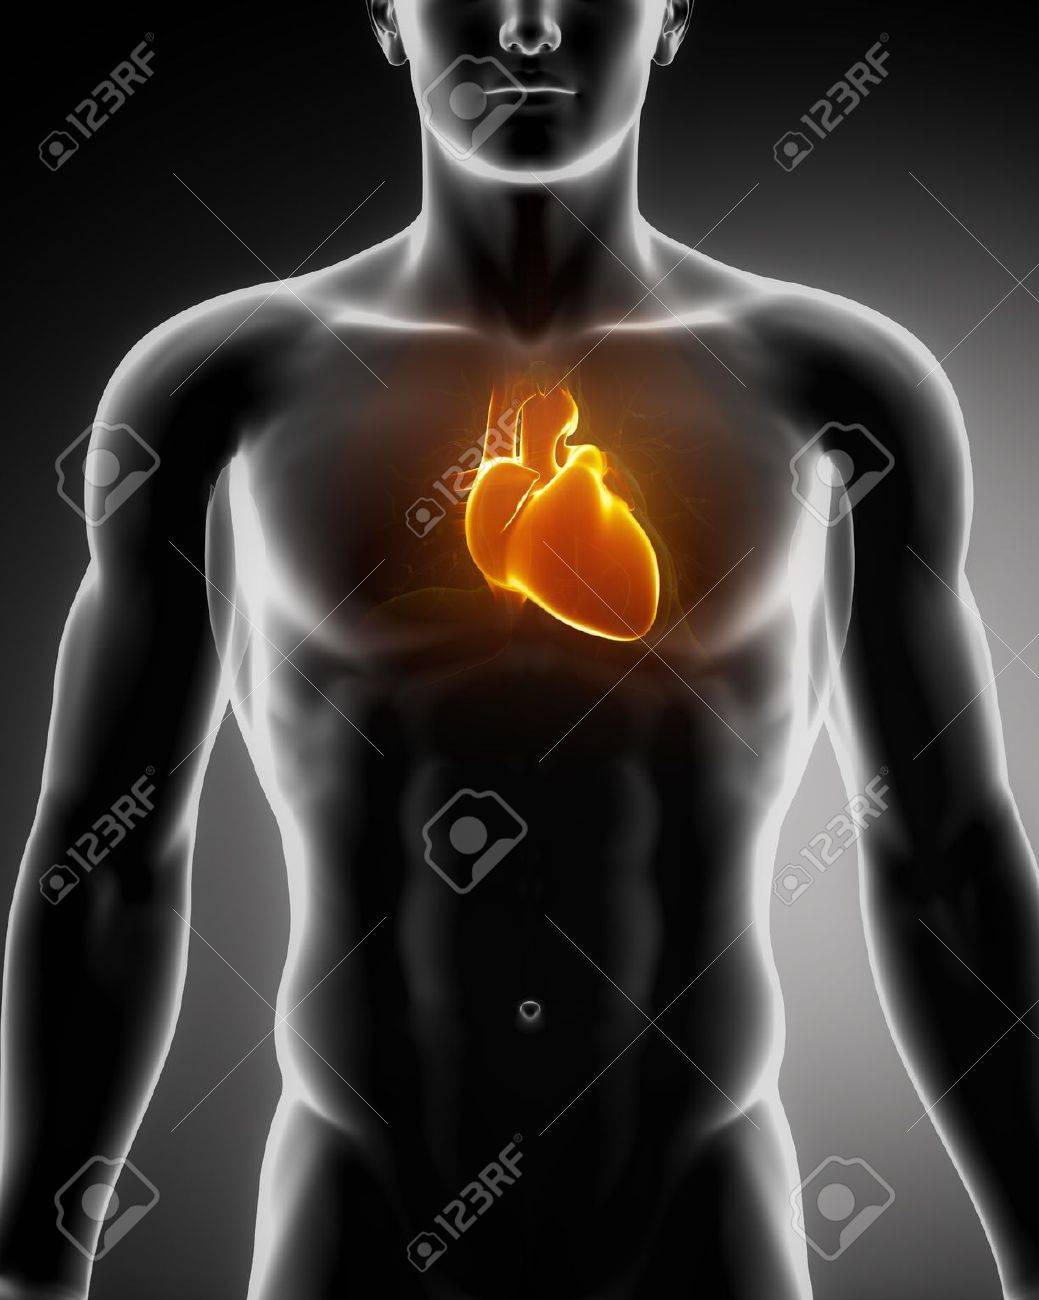 Male Heart Anatomy Of Human Organs In X Ray View Stock Photo